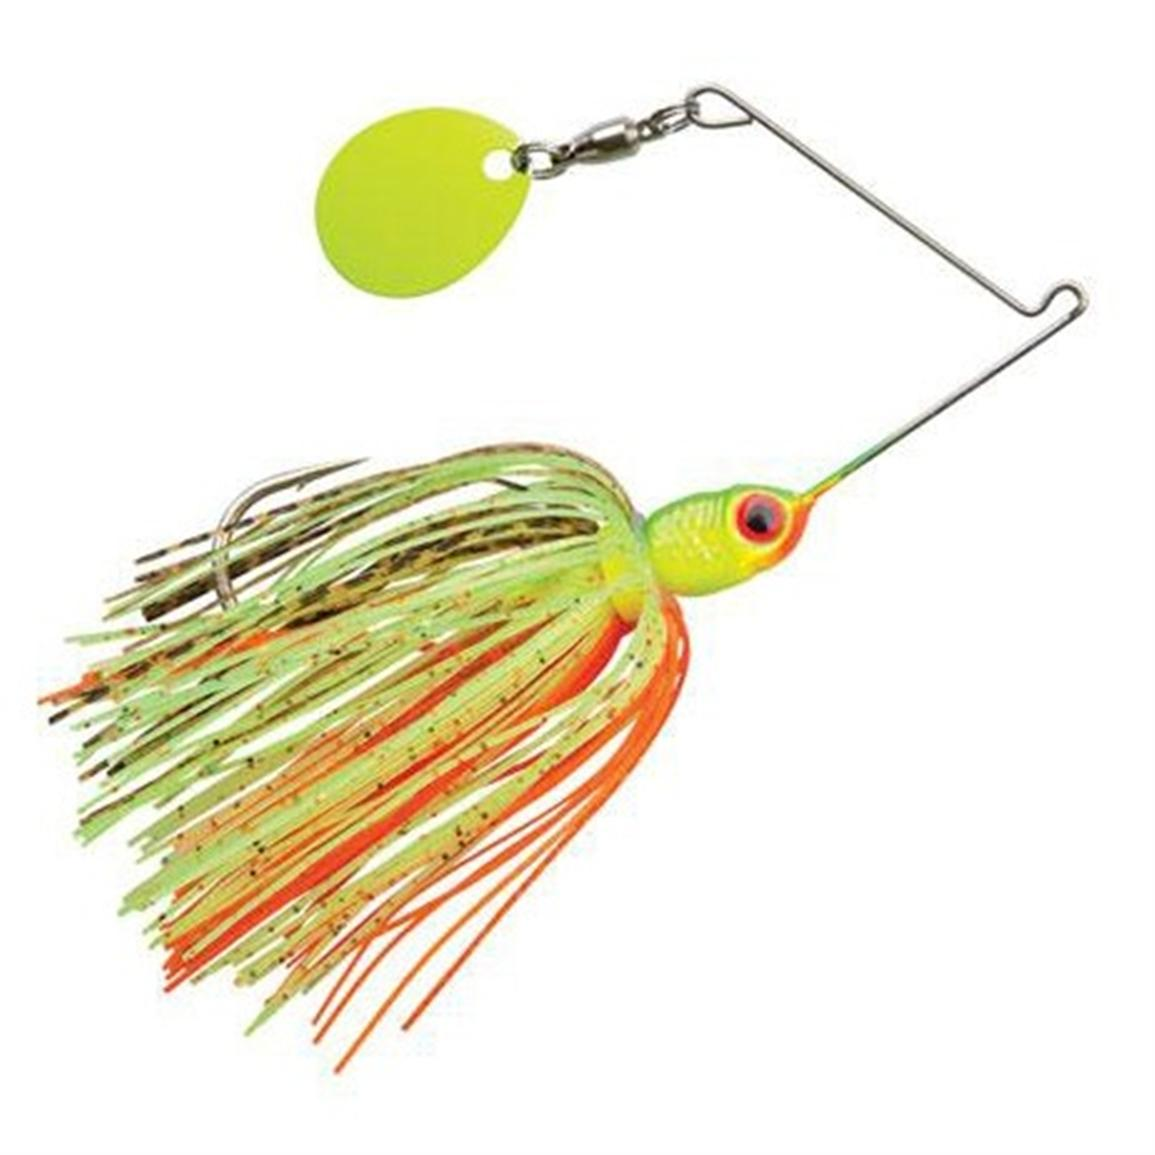 Booyah micro pond magic lure 200992 spinnerbaits at sportsman 39 s guide Best lures for pond fishing